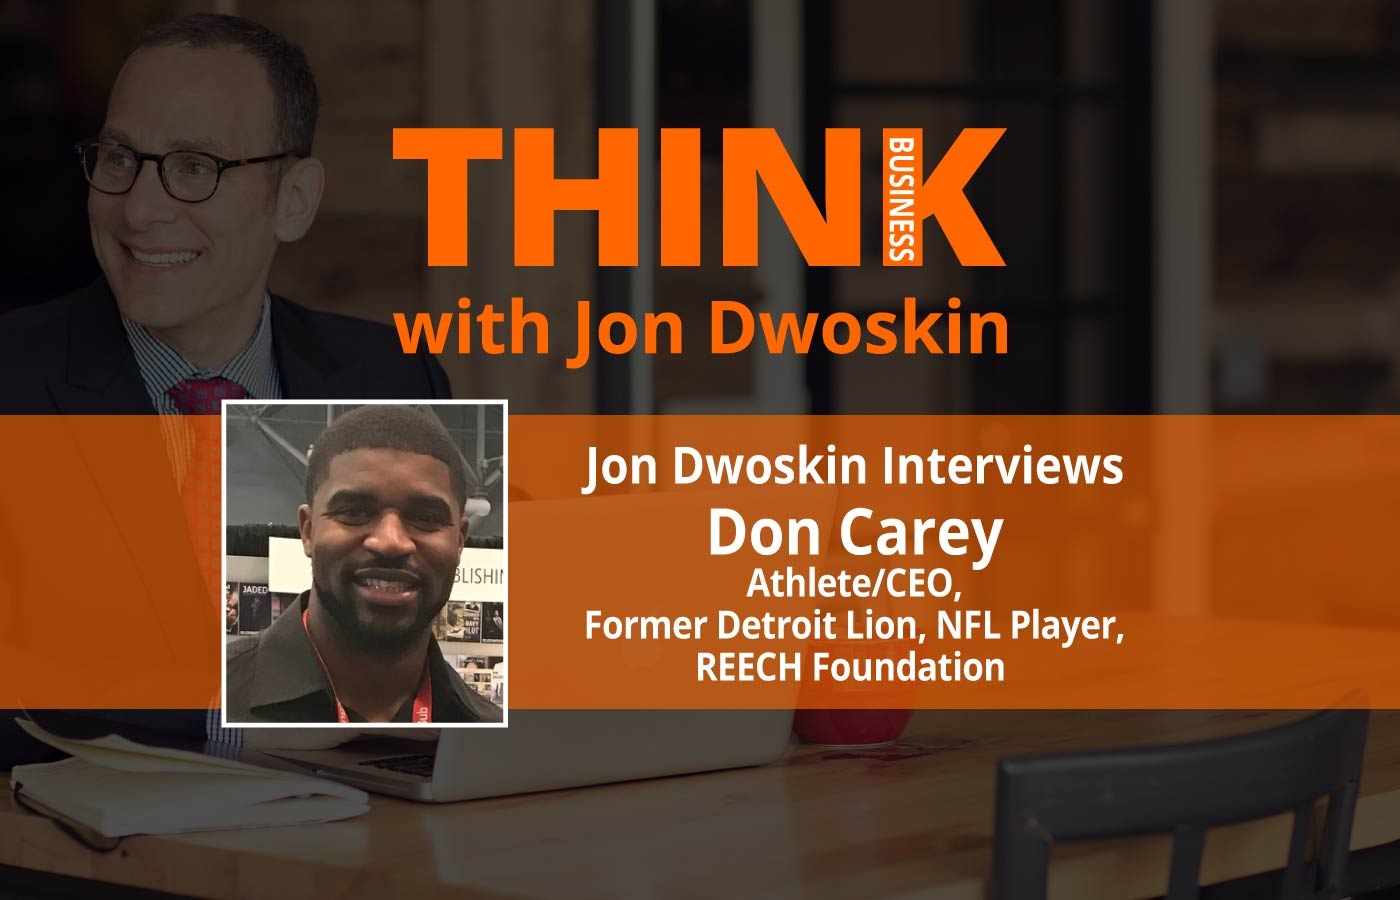 THINK Business: Jon Dwoskin Interviews Don Carey, Athlete/CEO, Detroit Lions & REECH Foundation